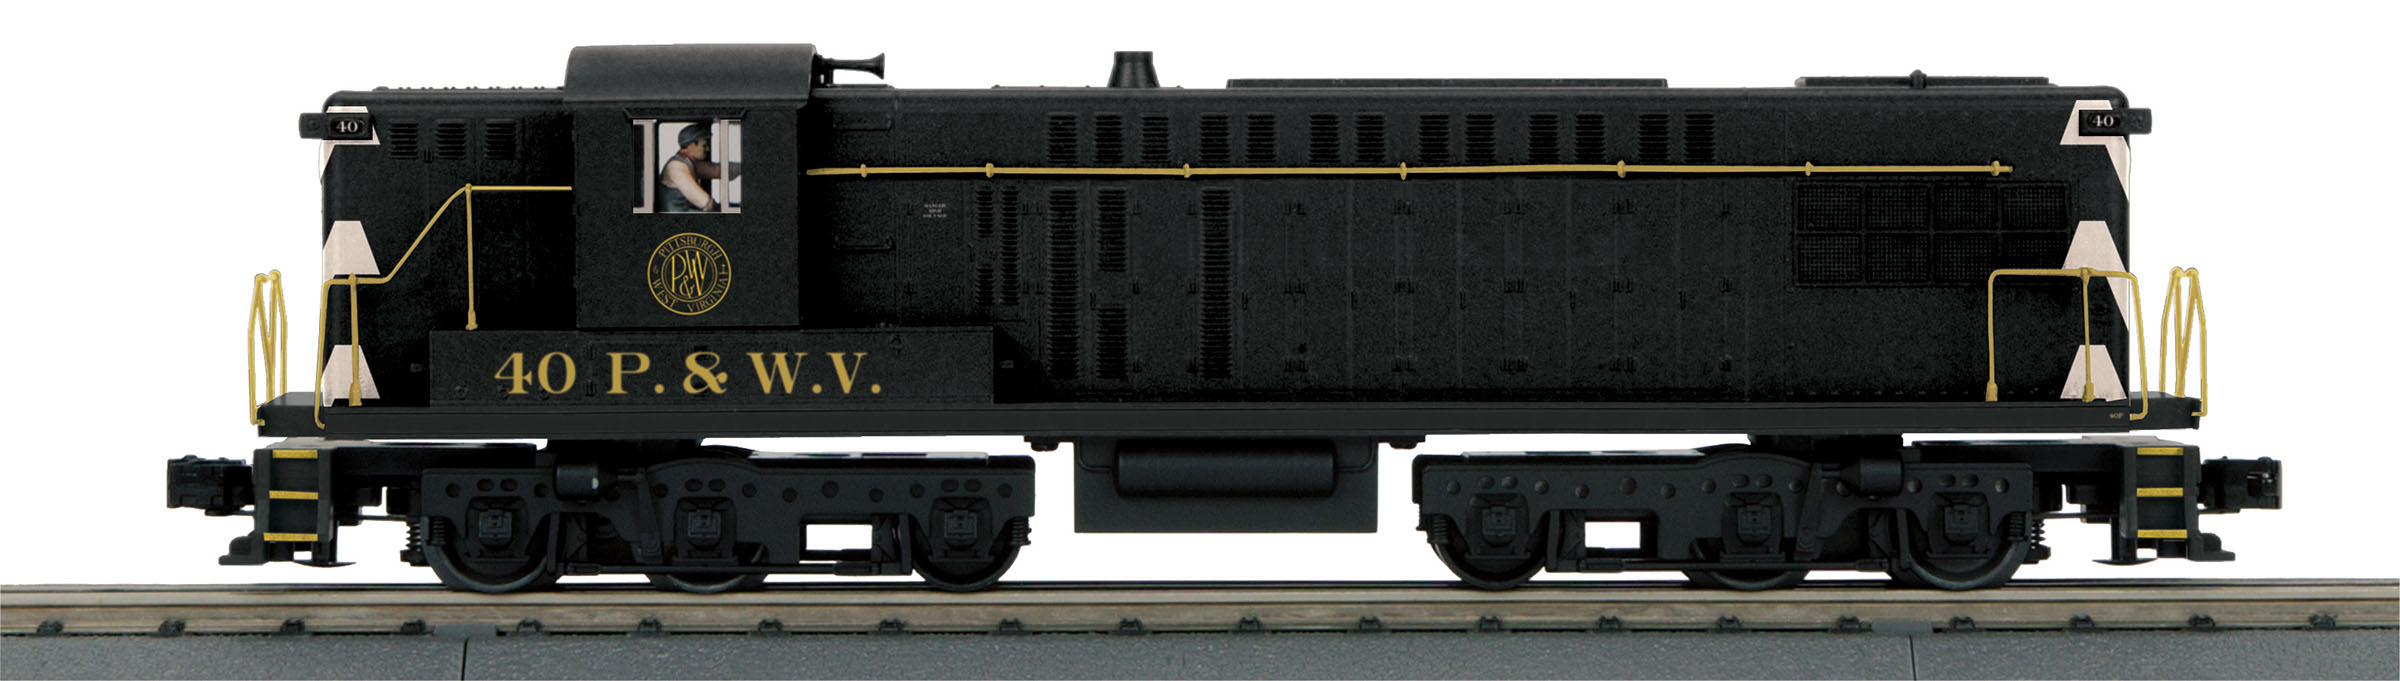 MTH 30205911 O-27 AS-616 w/PS3, P&WV #40 507 -30205911